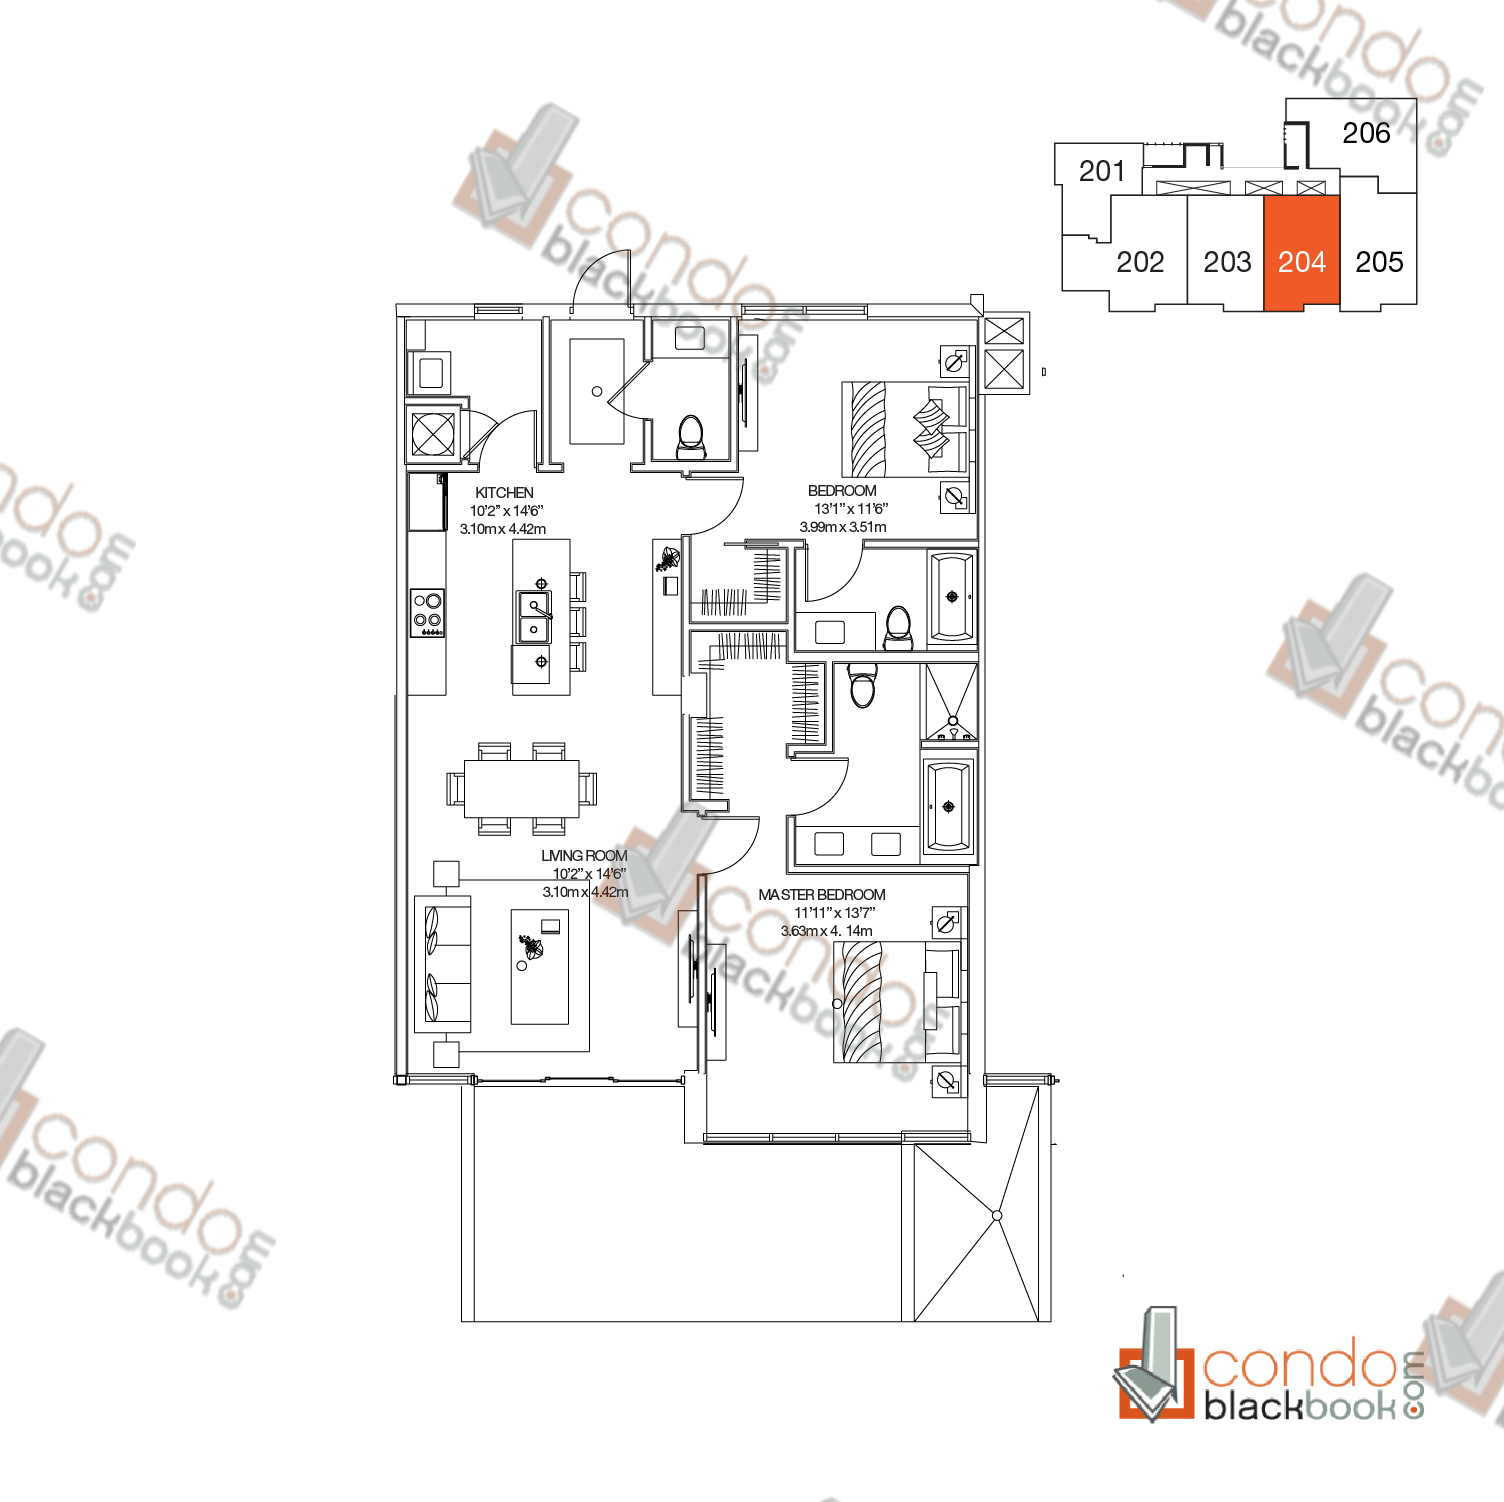 Floor plan for Buena Vista Villas Design District / Buena Vista Miami, model Unit 204, line 04, 2/2.5 bedrooms, 1,283 sq ft